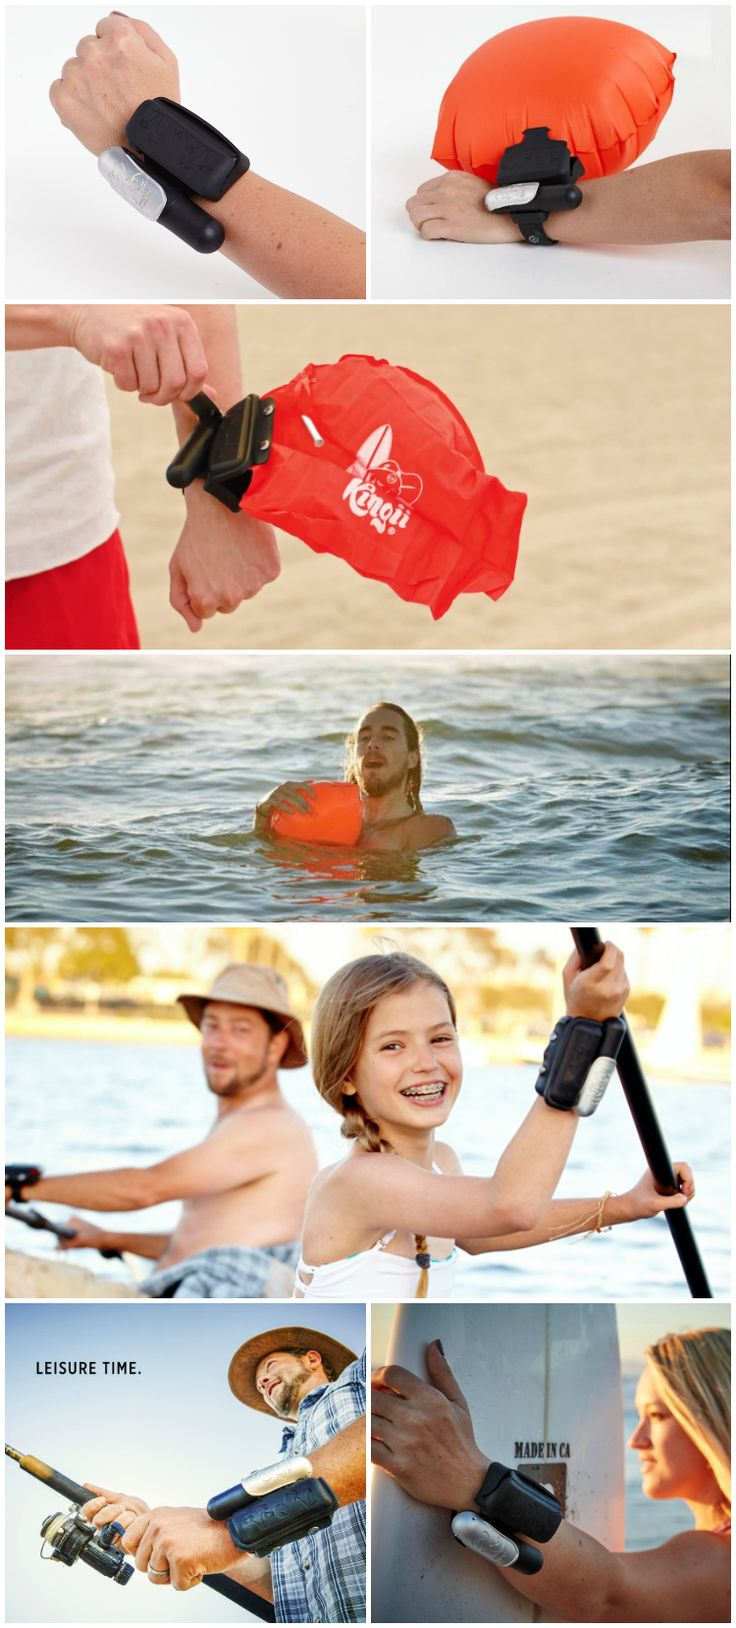 Kingii is the new wearable for all of you who love the water. If you need help to stay afloat, pull the lever and an inflation bag pulls you to the surface.